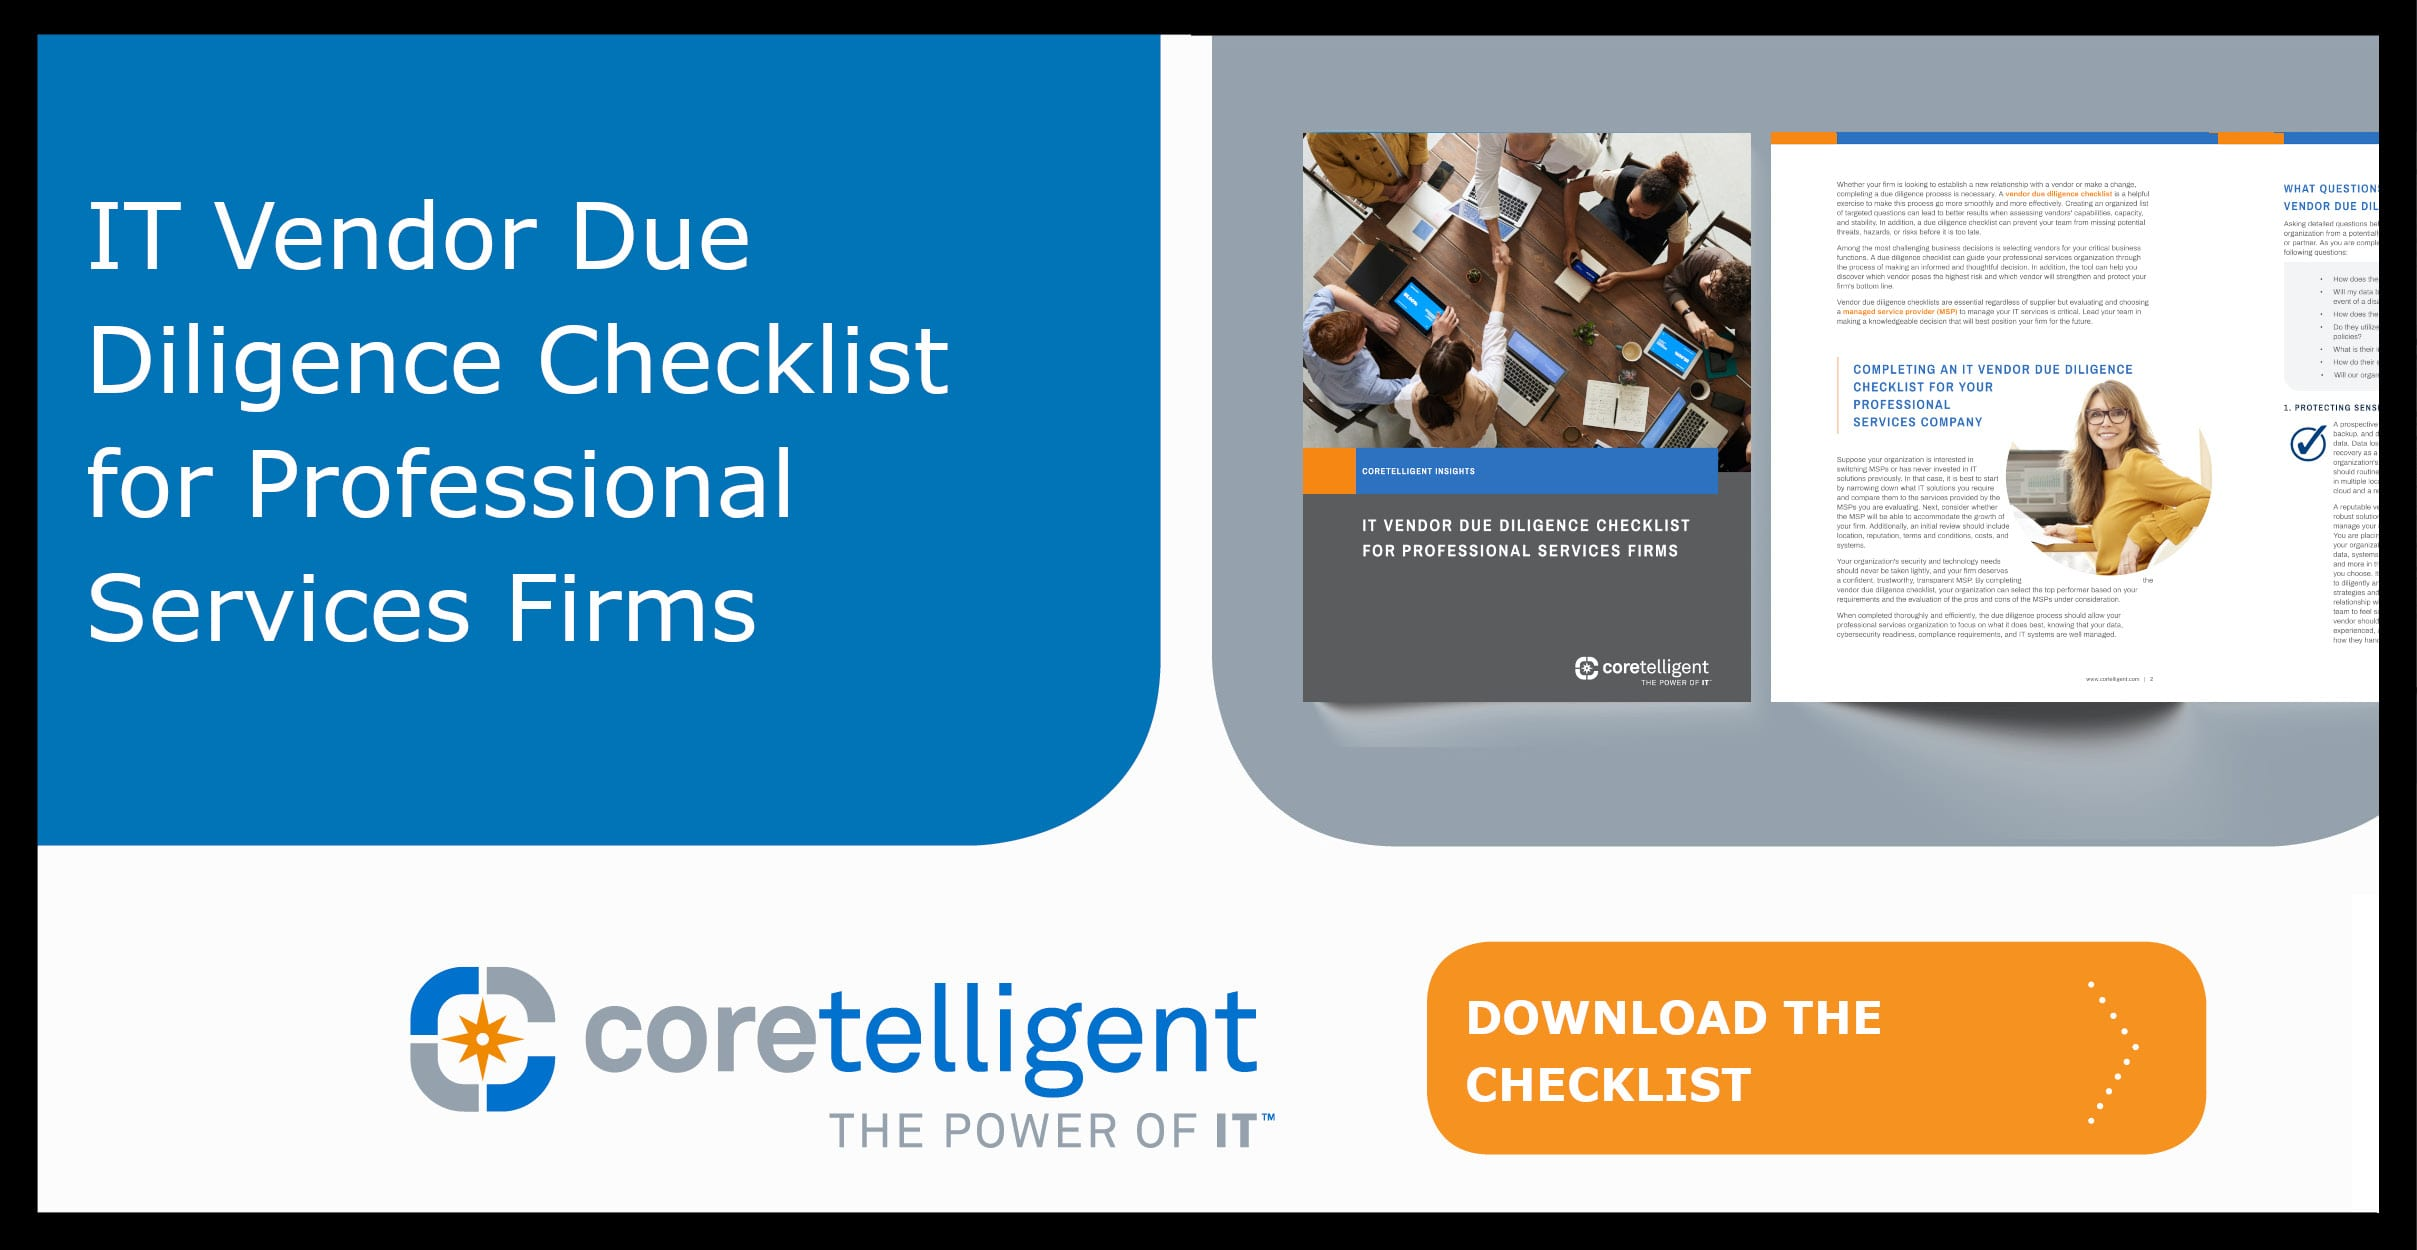 IT Vendor Due Diligence Checklist for Professional Services Firms